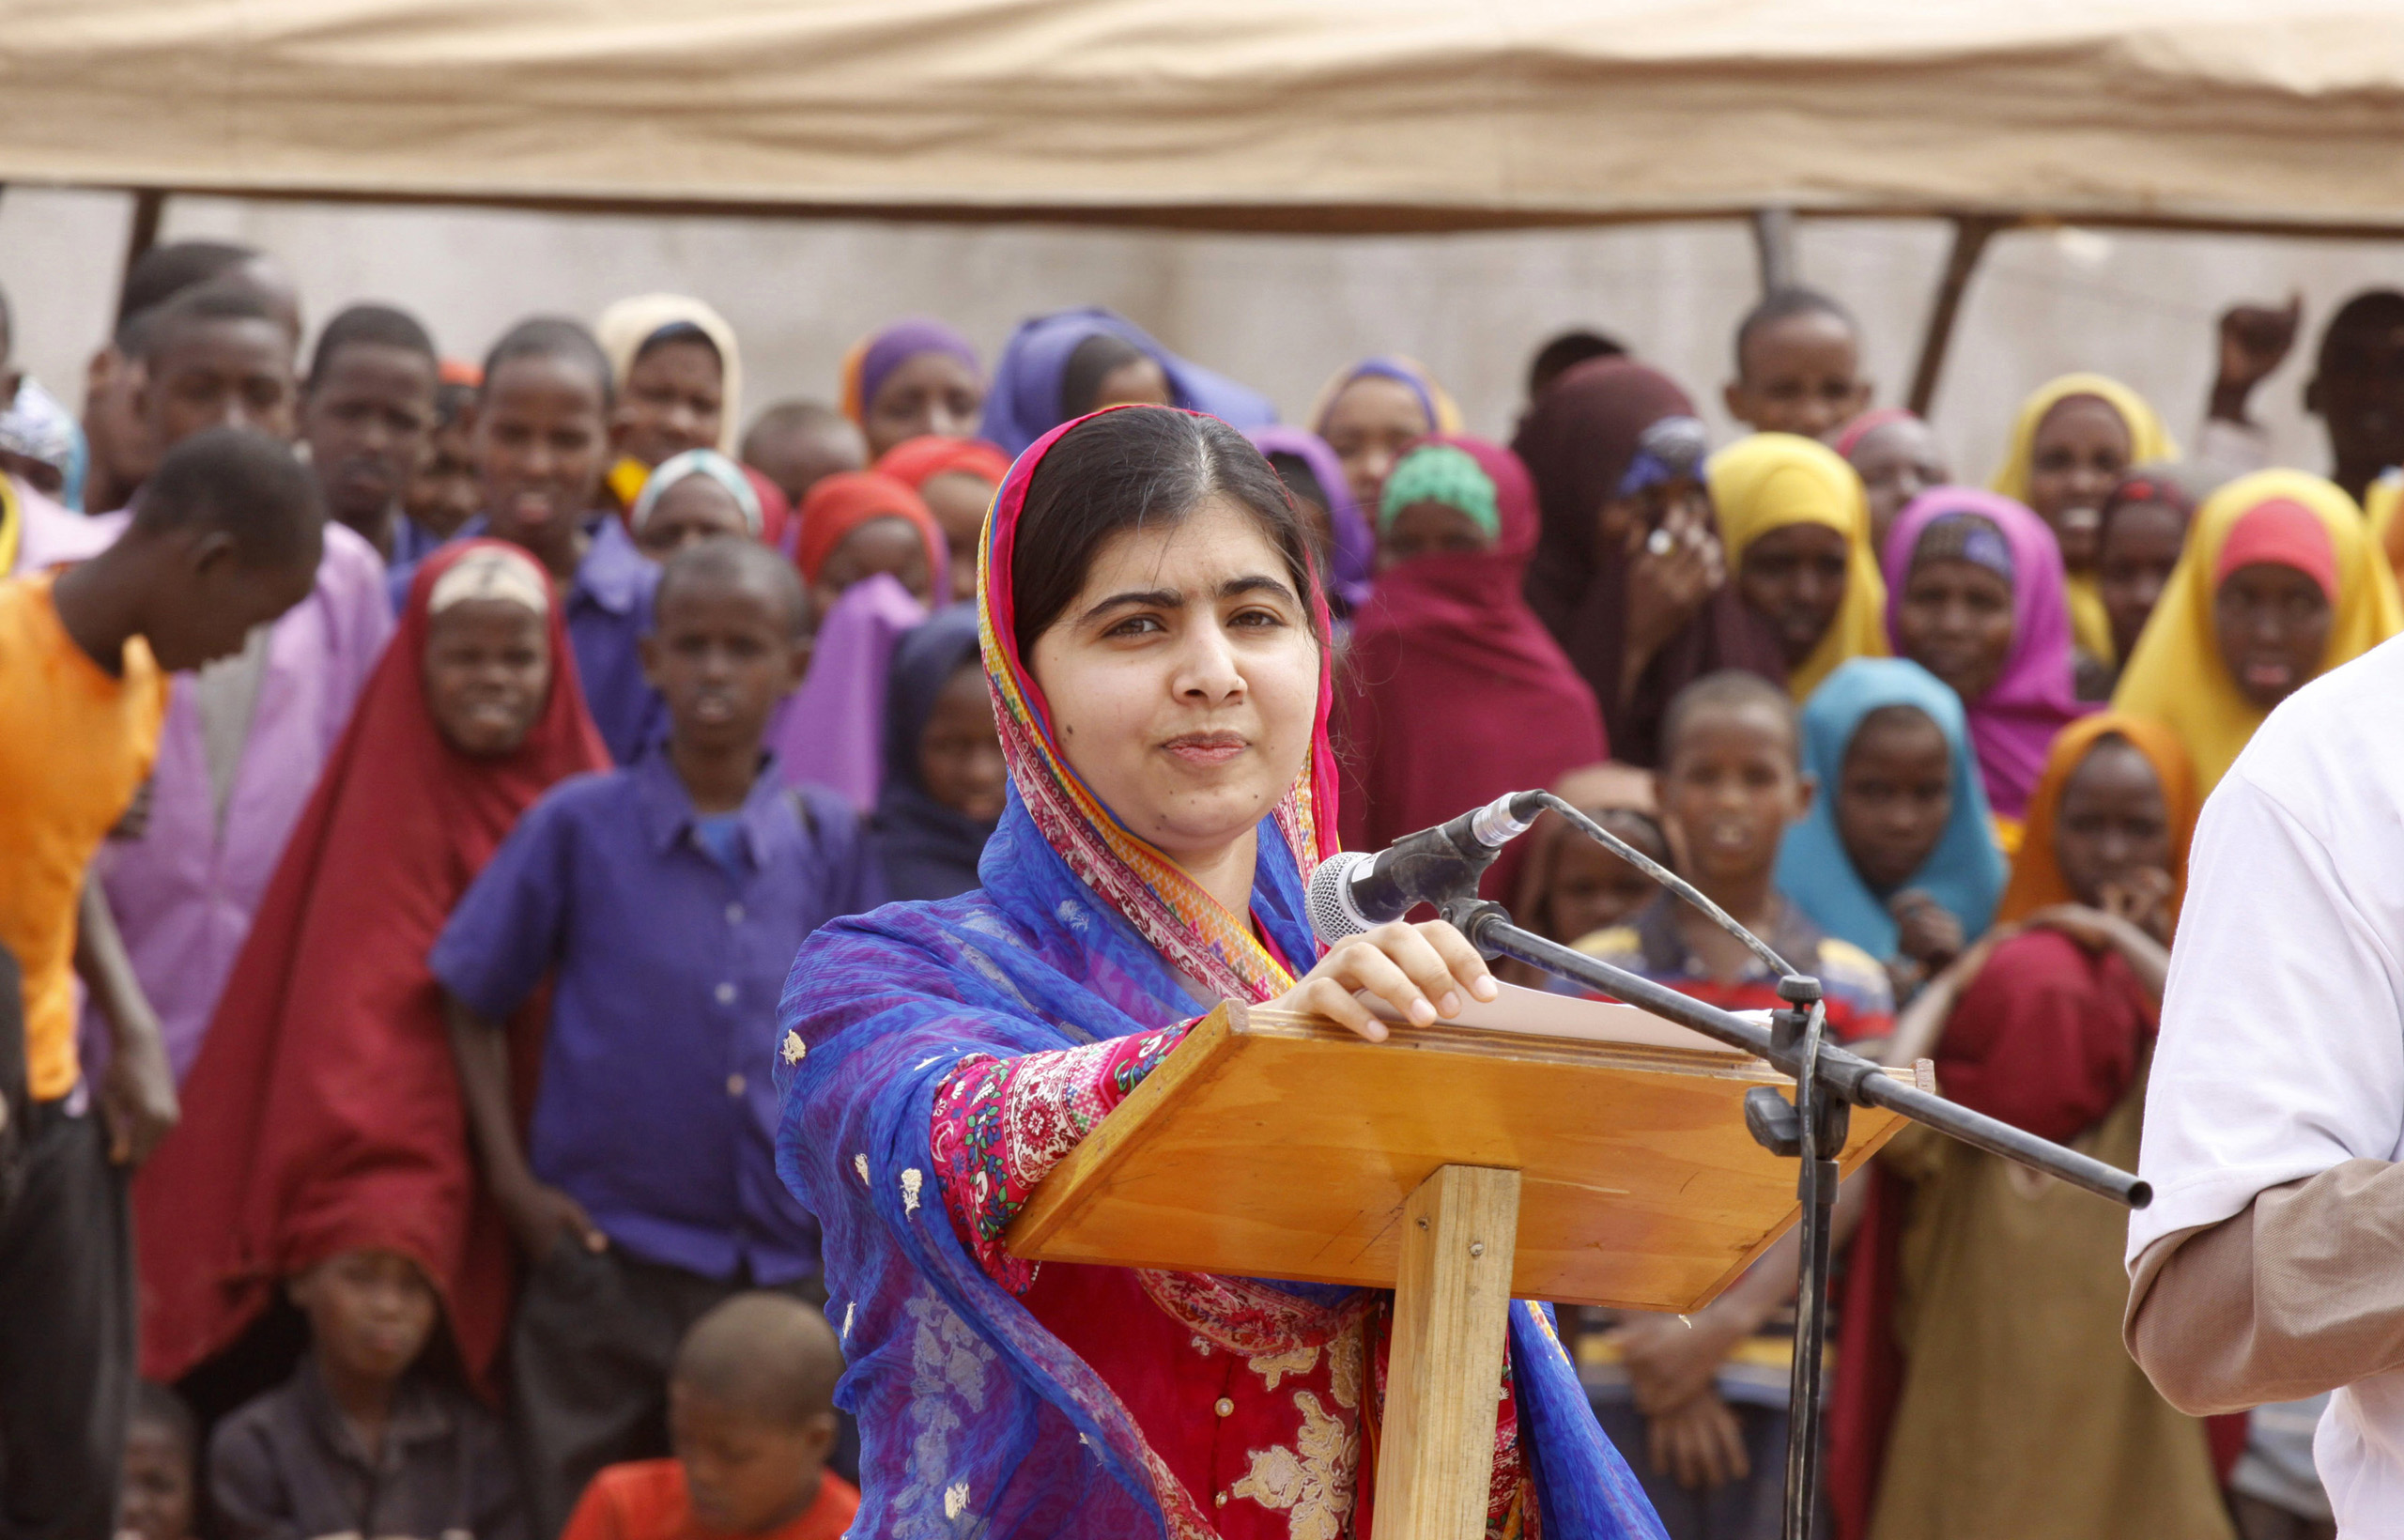 Malala Yousafza, speaks to refugees in the Dadaab refugee camp, Kenya, on July 12, 2016.